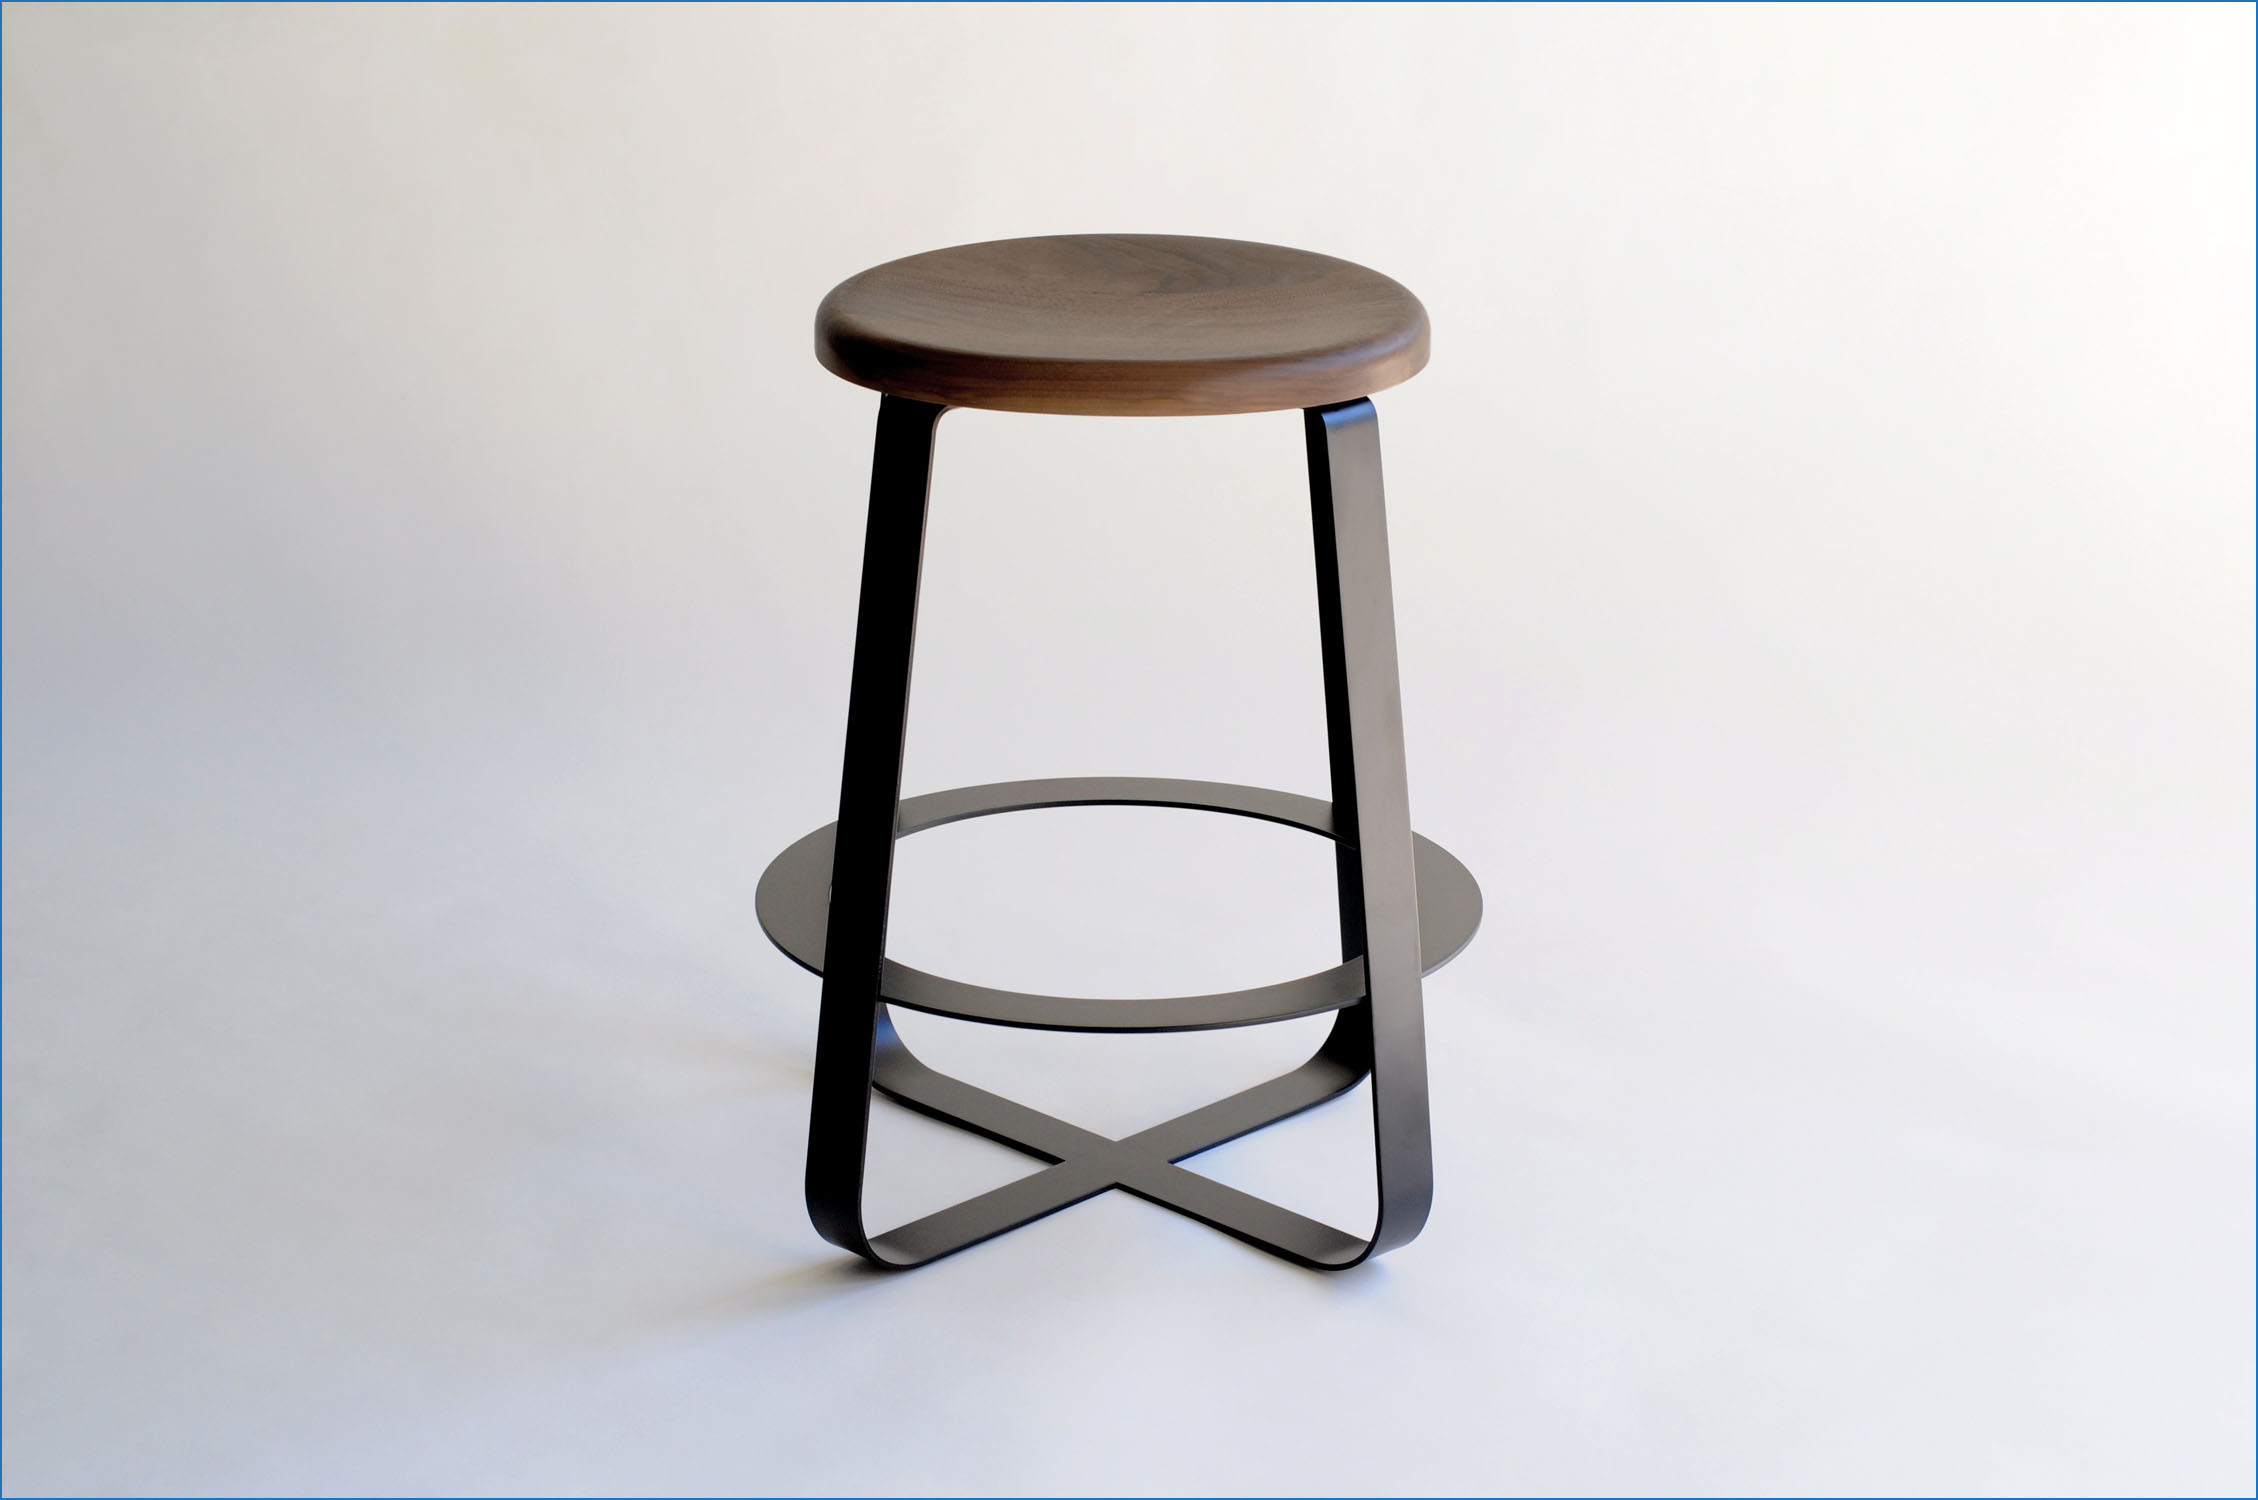 hardwood floor furniture protectors home depot of felt furniture pads lowes new 43 perfect patio chairs lowes furniture pertaining to felt furniture pads lowes lovely bar stools at home depot bar stools bar stools stool felt